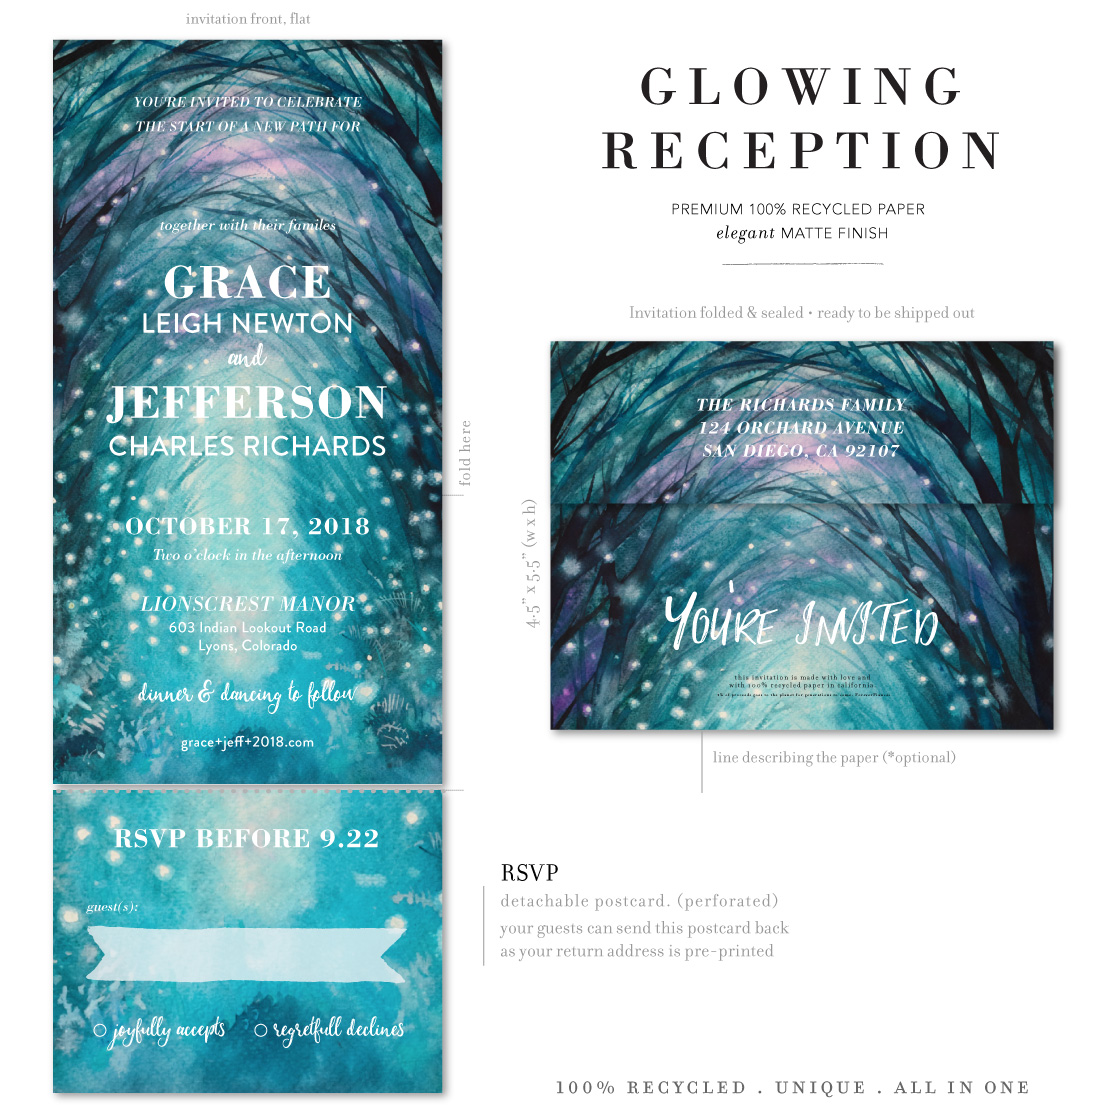 Glowing Reception whimsical winter invitations